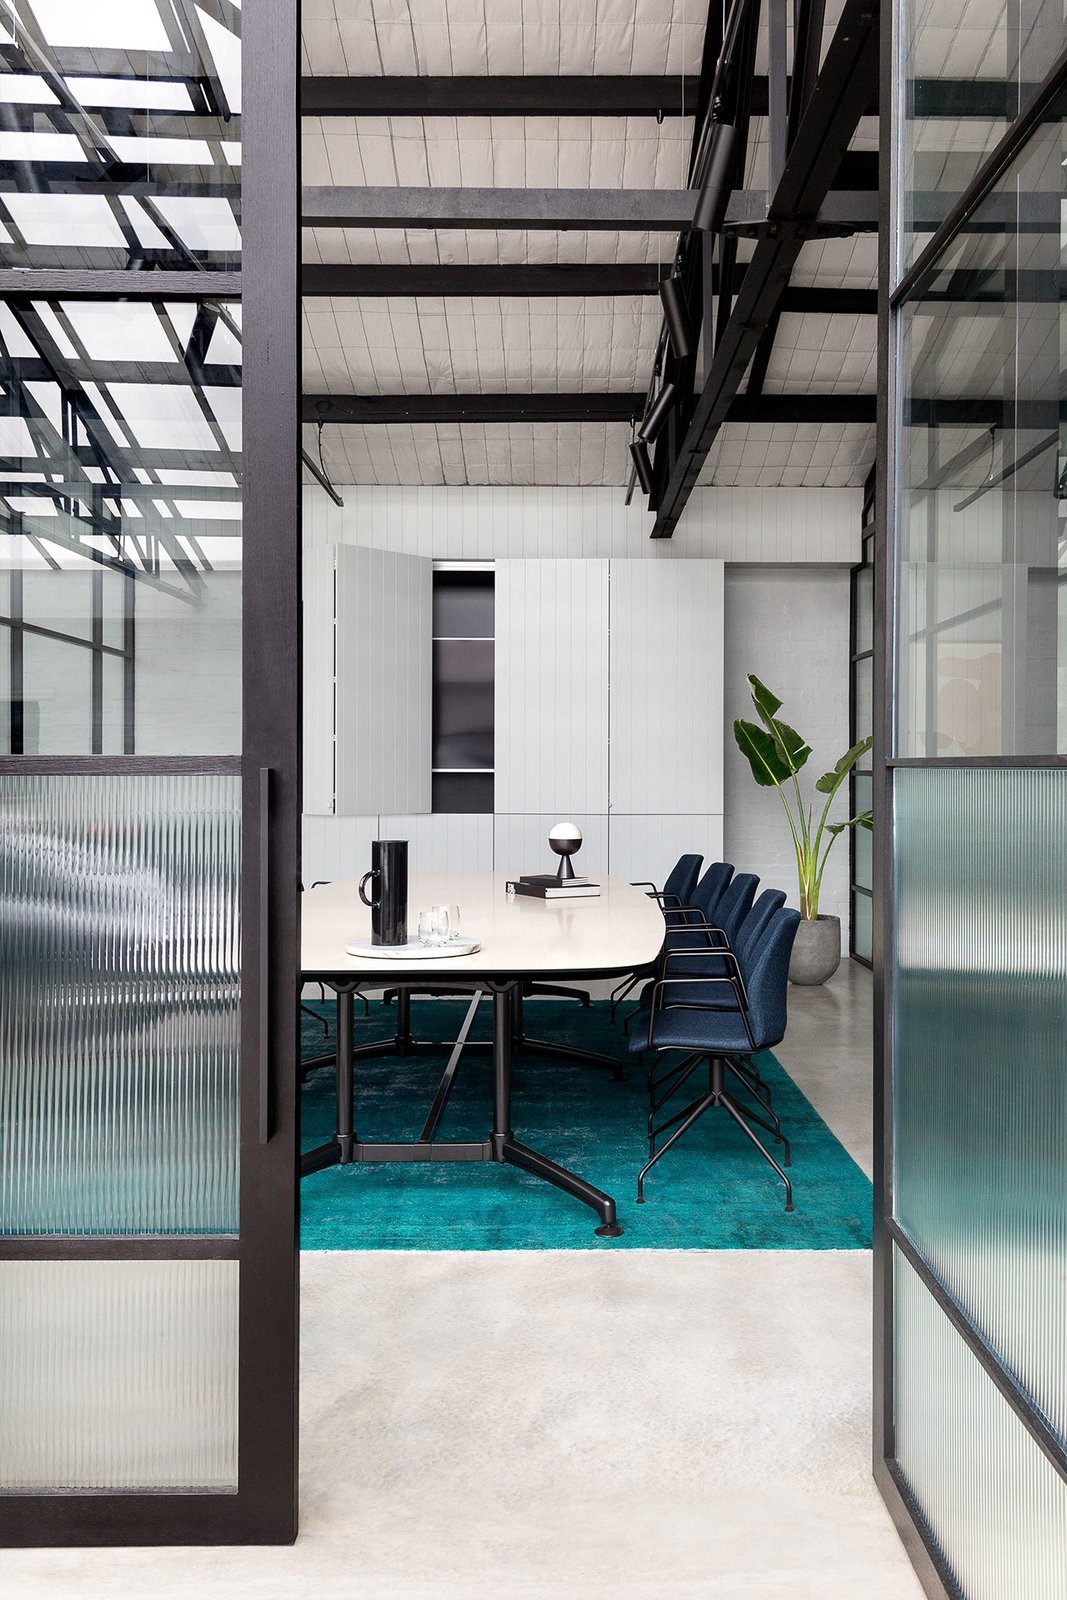 Office, Study Room Type, Chair, Storage, Concrete Floor, and Rug Floor  Photo 11 of 14 in An Art Deco Warehouse in Melbourne Is Converted Into a Shared Office Space